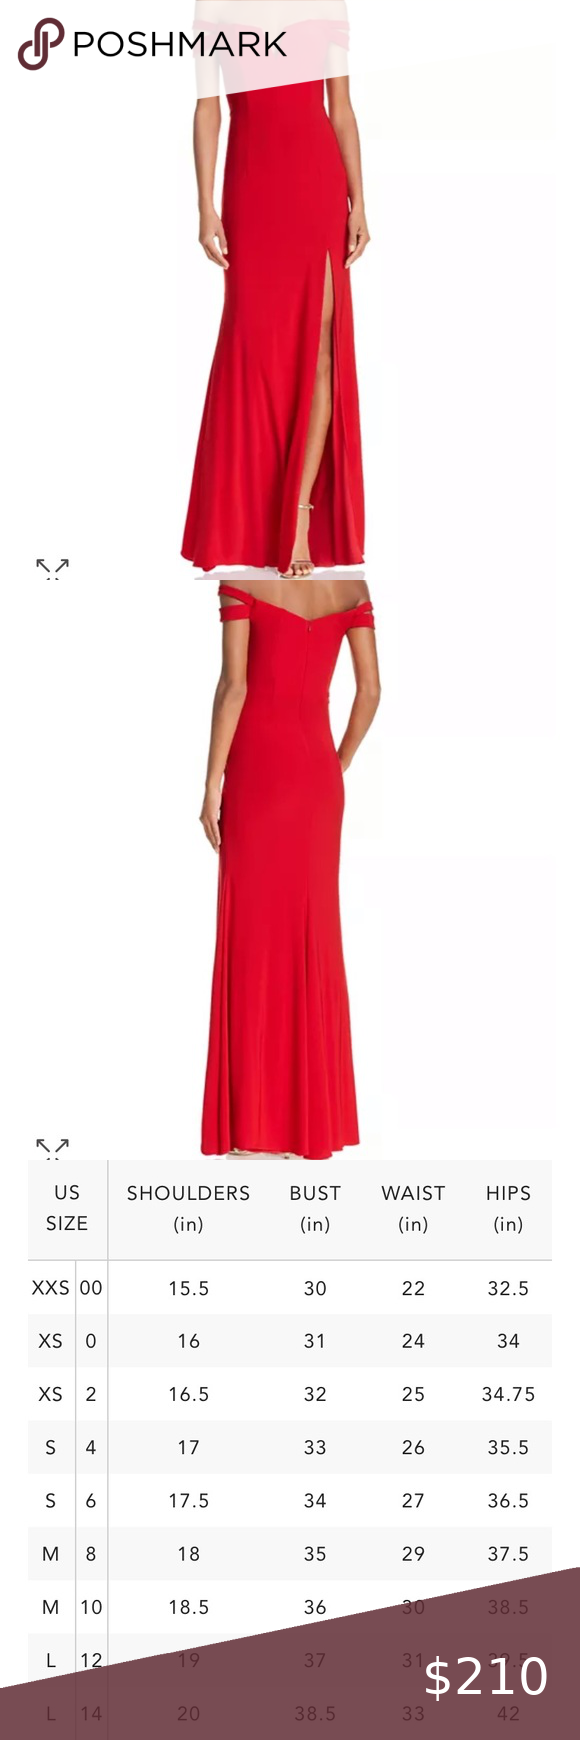 Red Prom Dress By Bloomingdales From Bloomingdales Size 8 M New With Tags Bloomingdale S Dresses Prom Red Prom Dress Bloomingdale Dresses Velvet Prom Dress [ 1740 x 580 Pixel ]